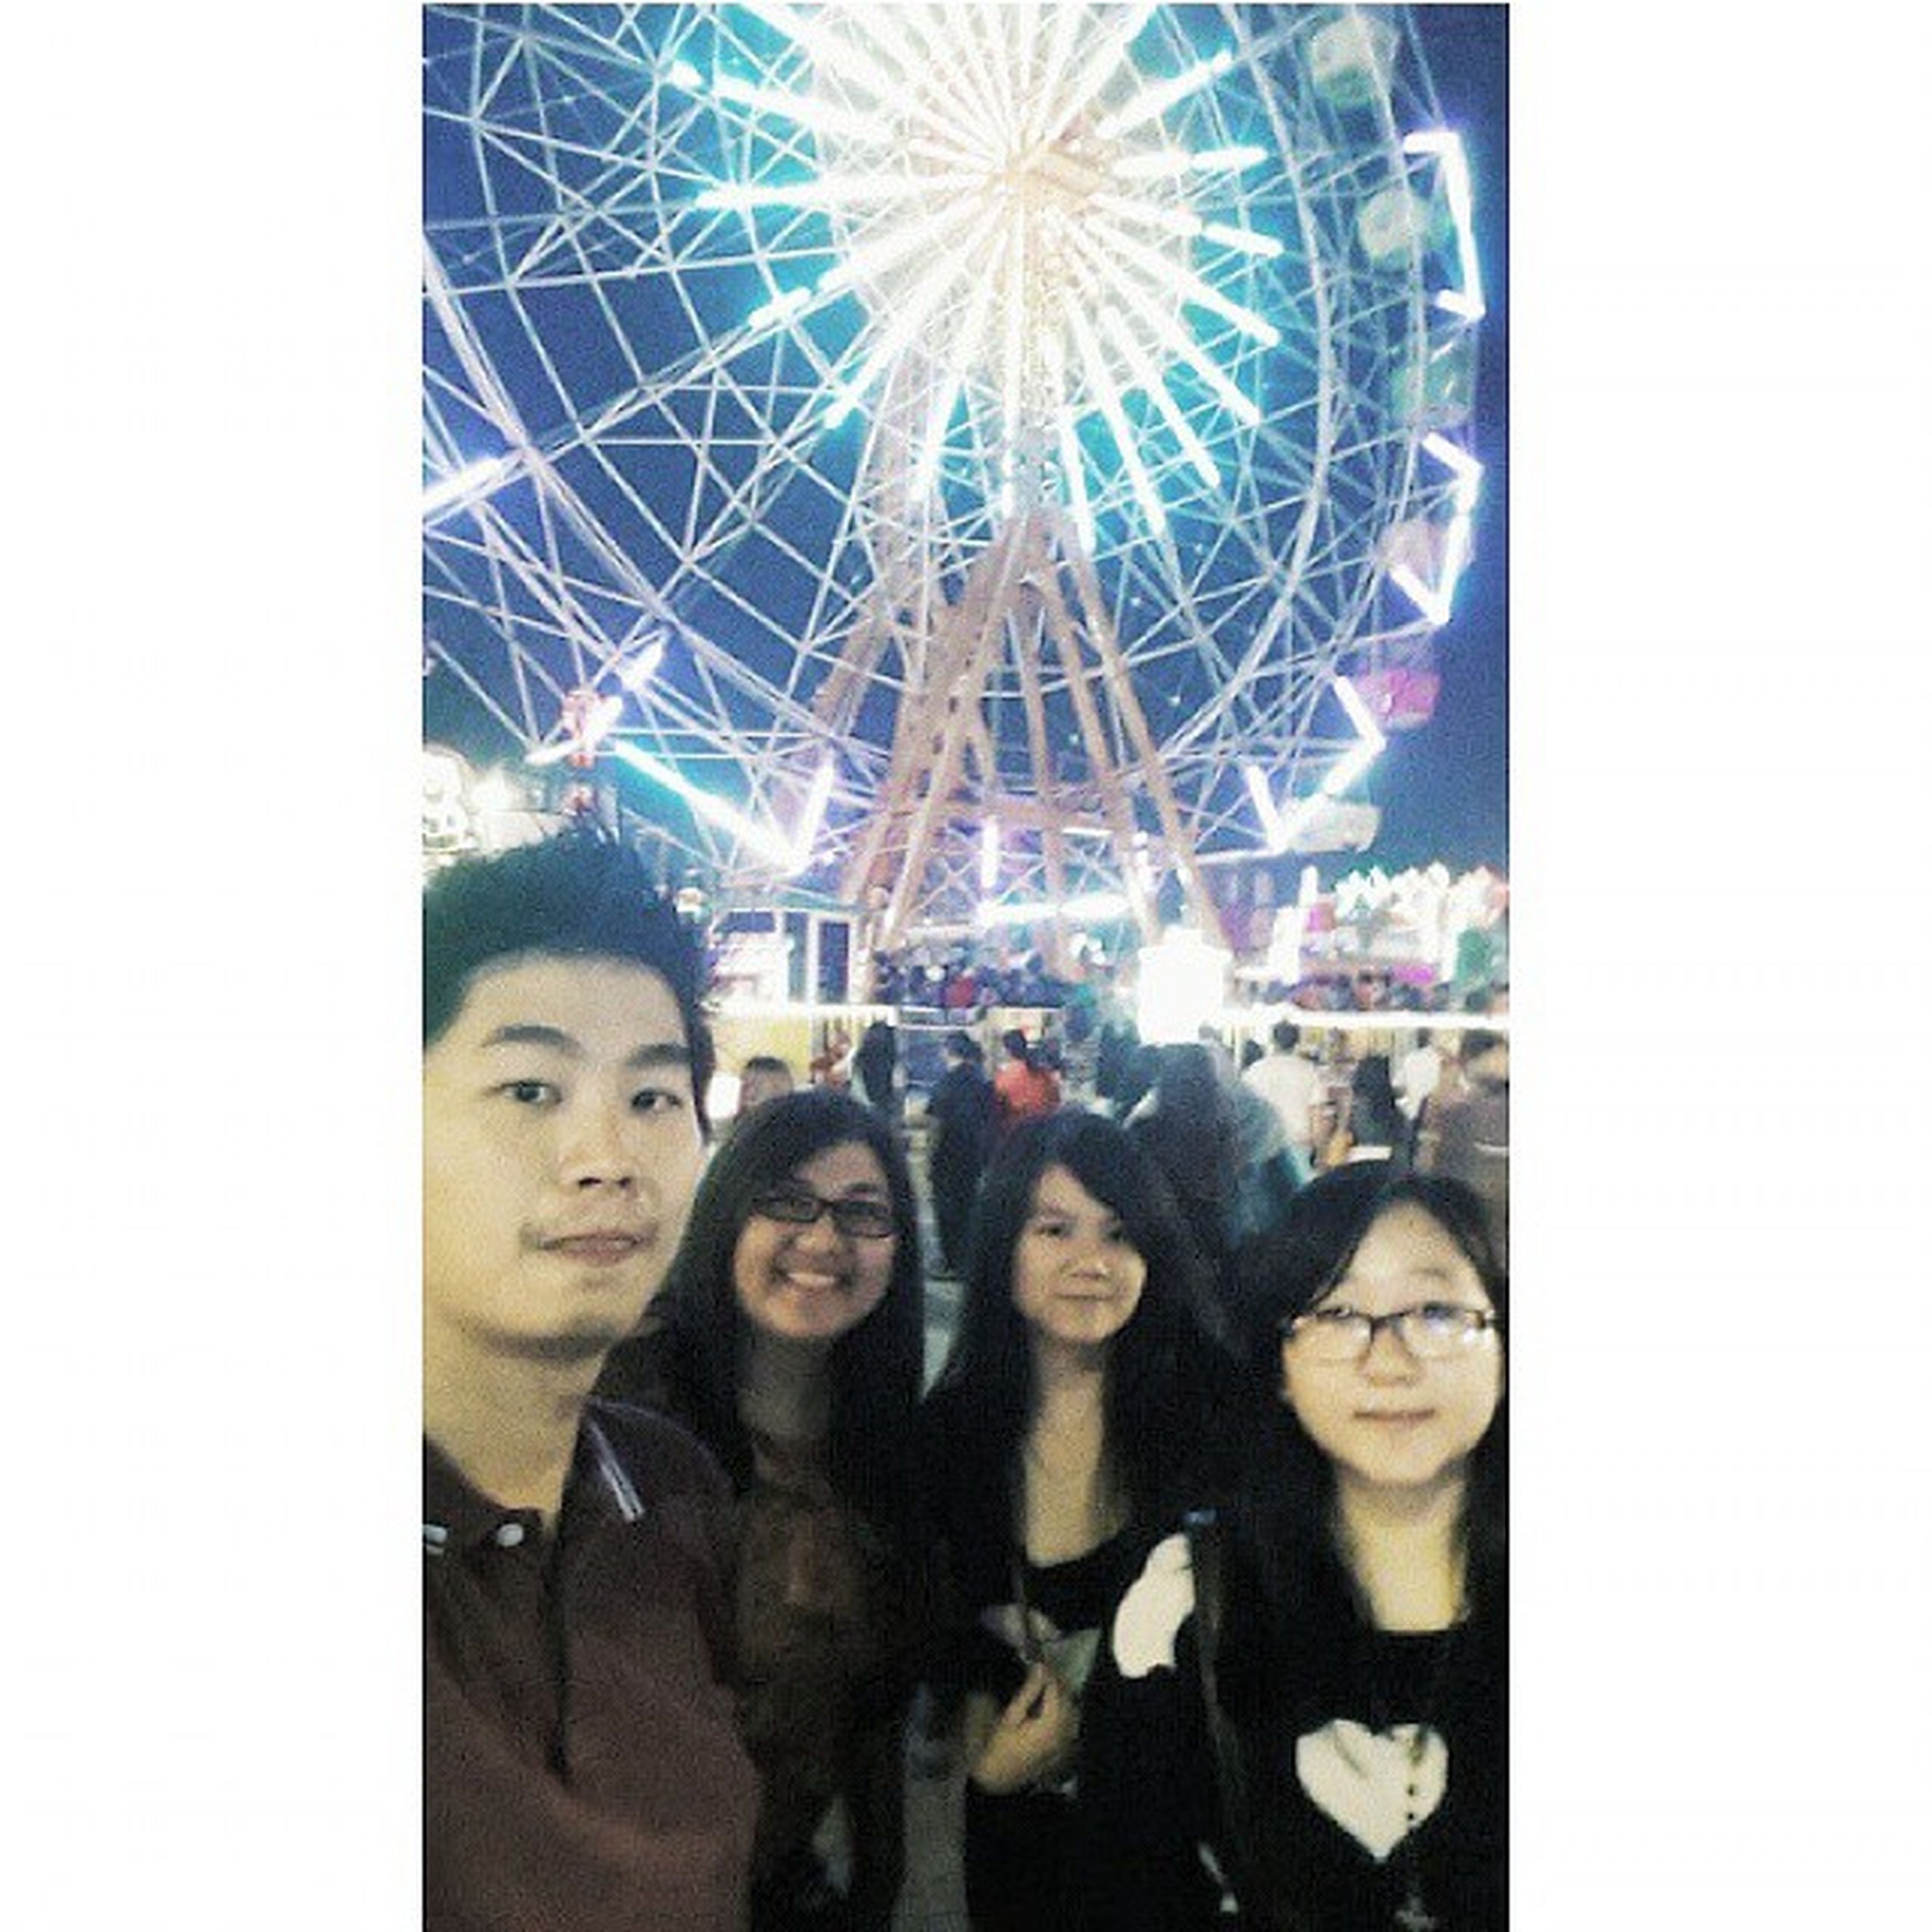 transfer print, lifestyles, leisure activity, arts culture and entertainment, fun, auto post production filter, enjoyment, indoors, amusement park, men, large group of people, person, standing, togetherness, amusement park ride, young adult, celebration, low angle view